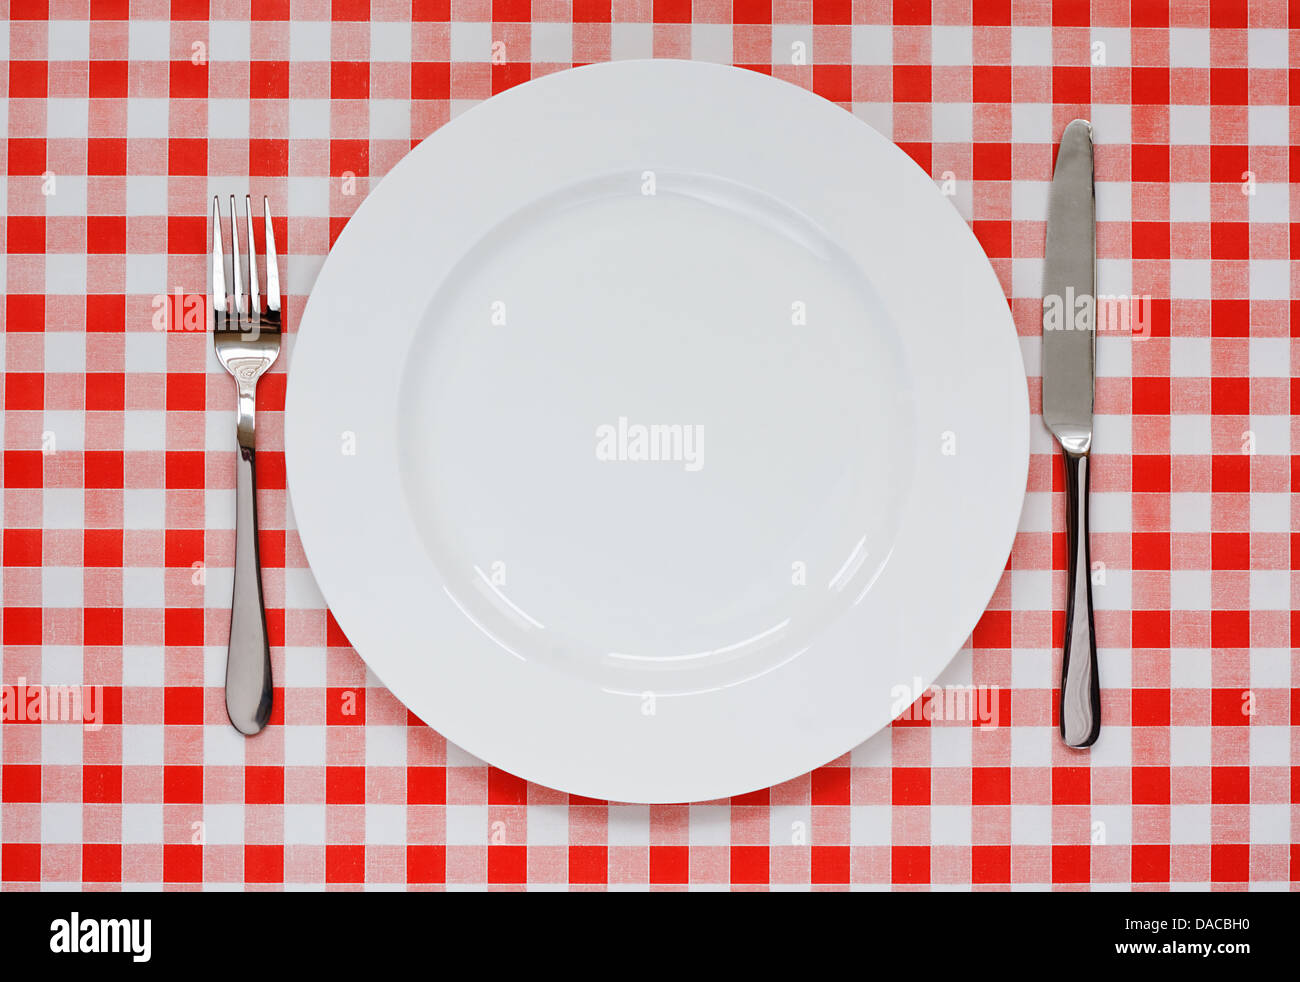 Empty plate setting with plate, knife and fork on red gingham background popular symbol for diners and cafes - Stock Image